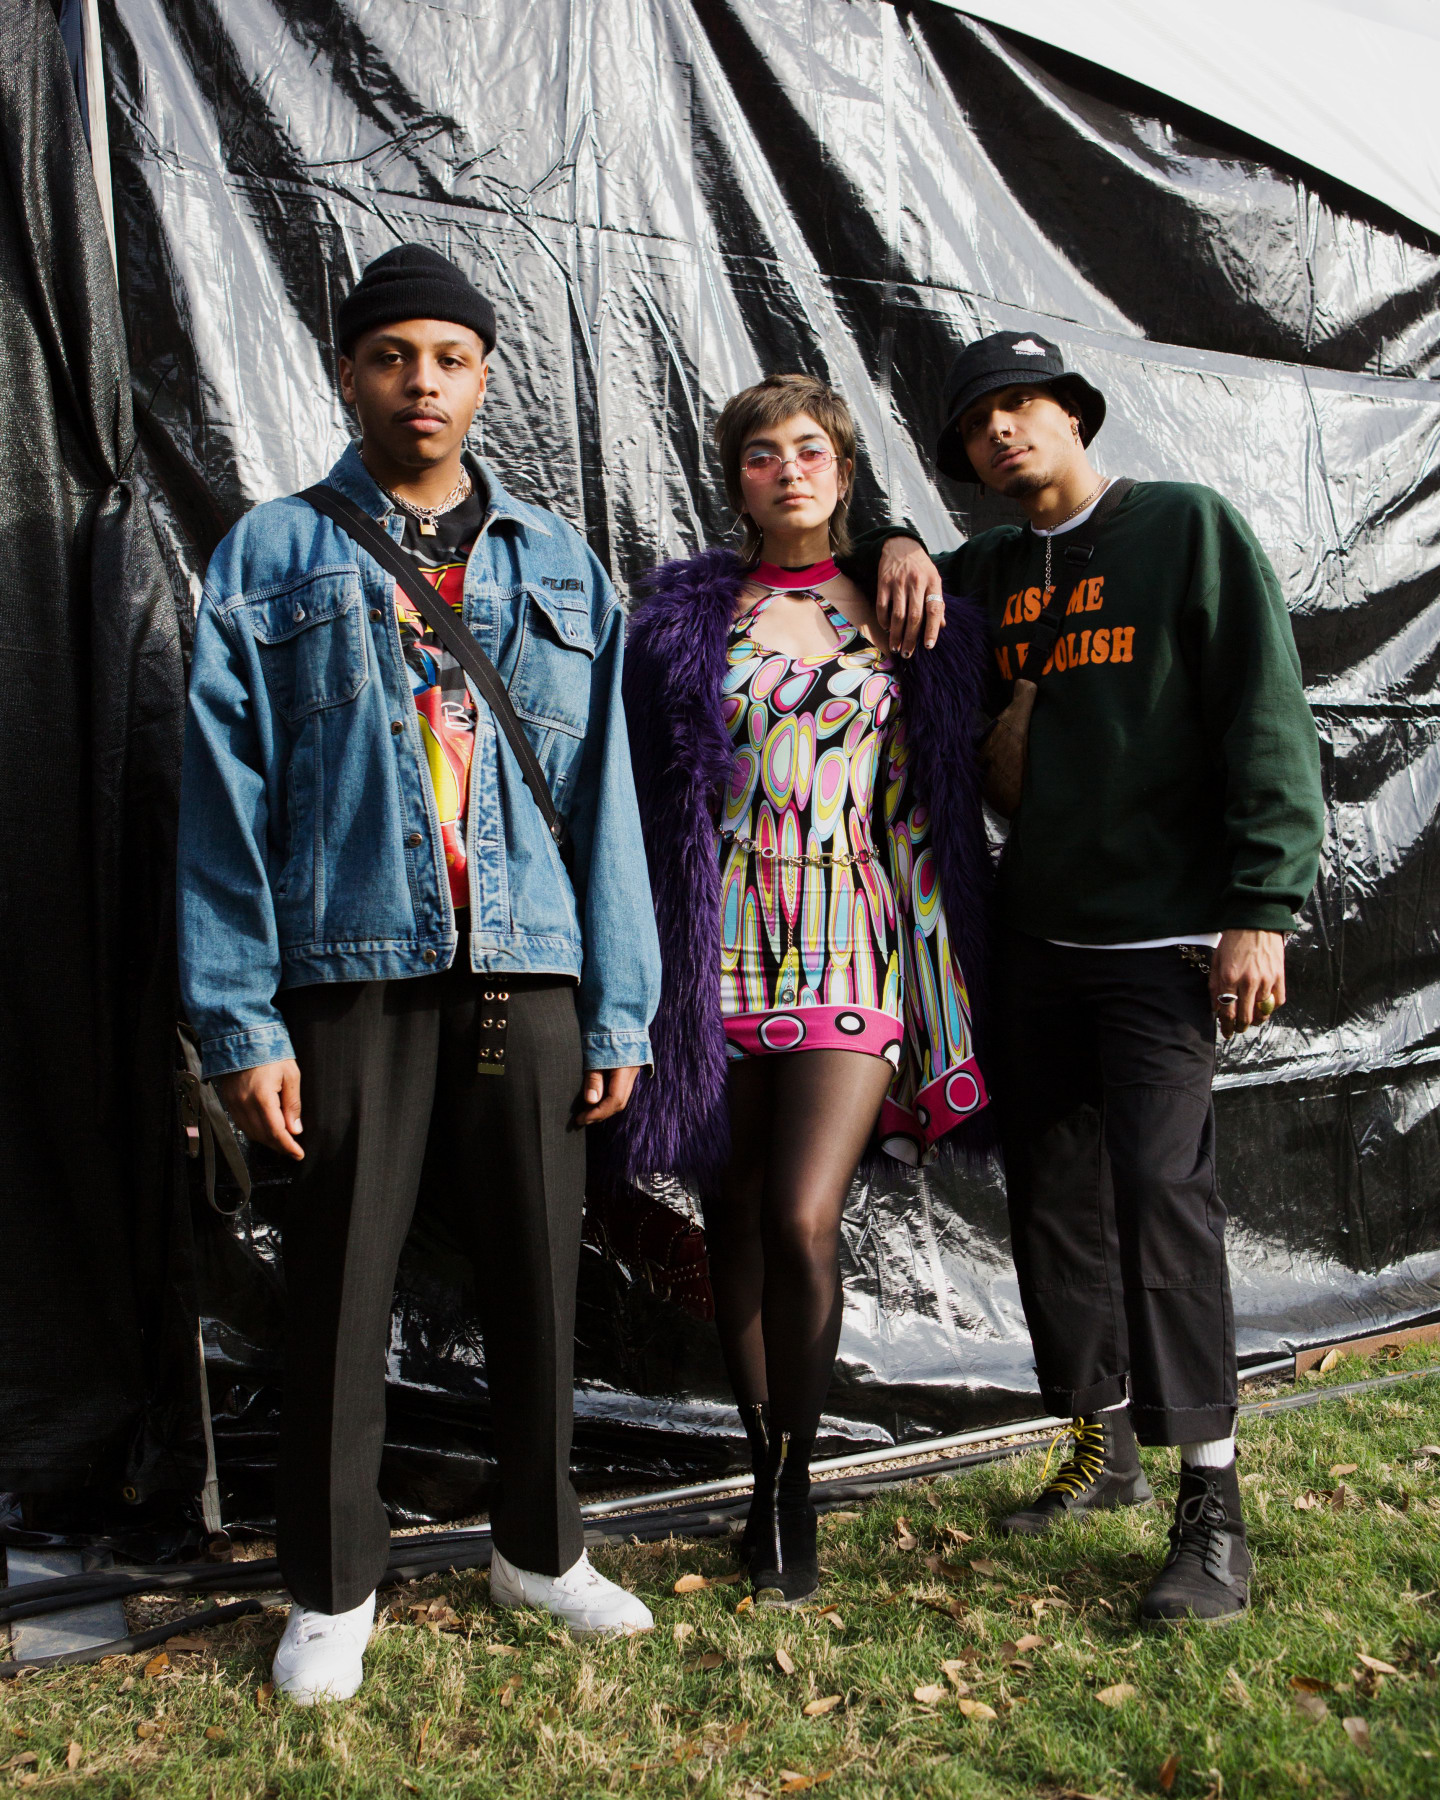 The 14 best dressed squads at FADER FORT